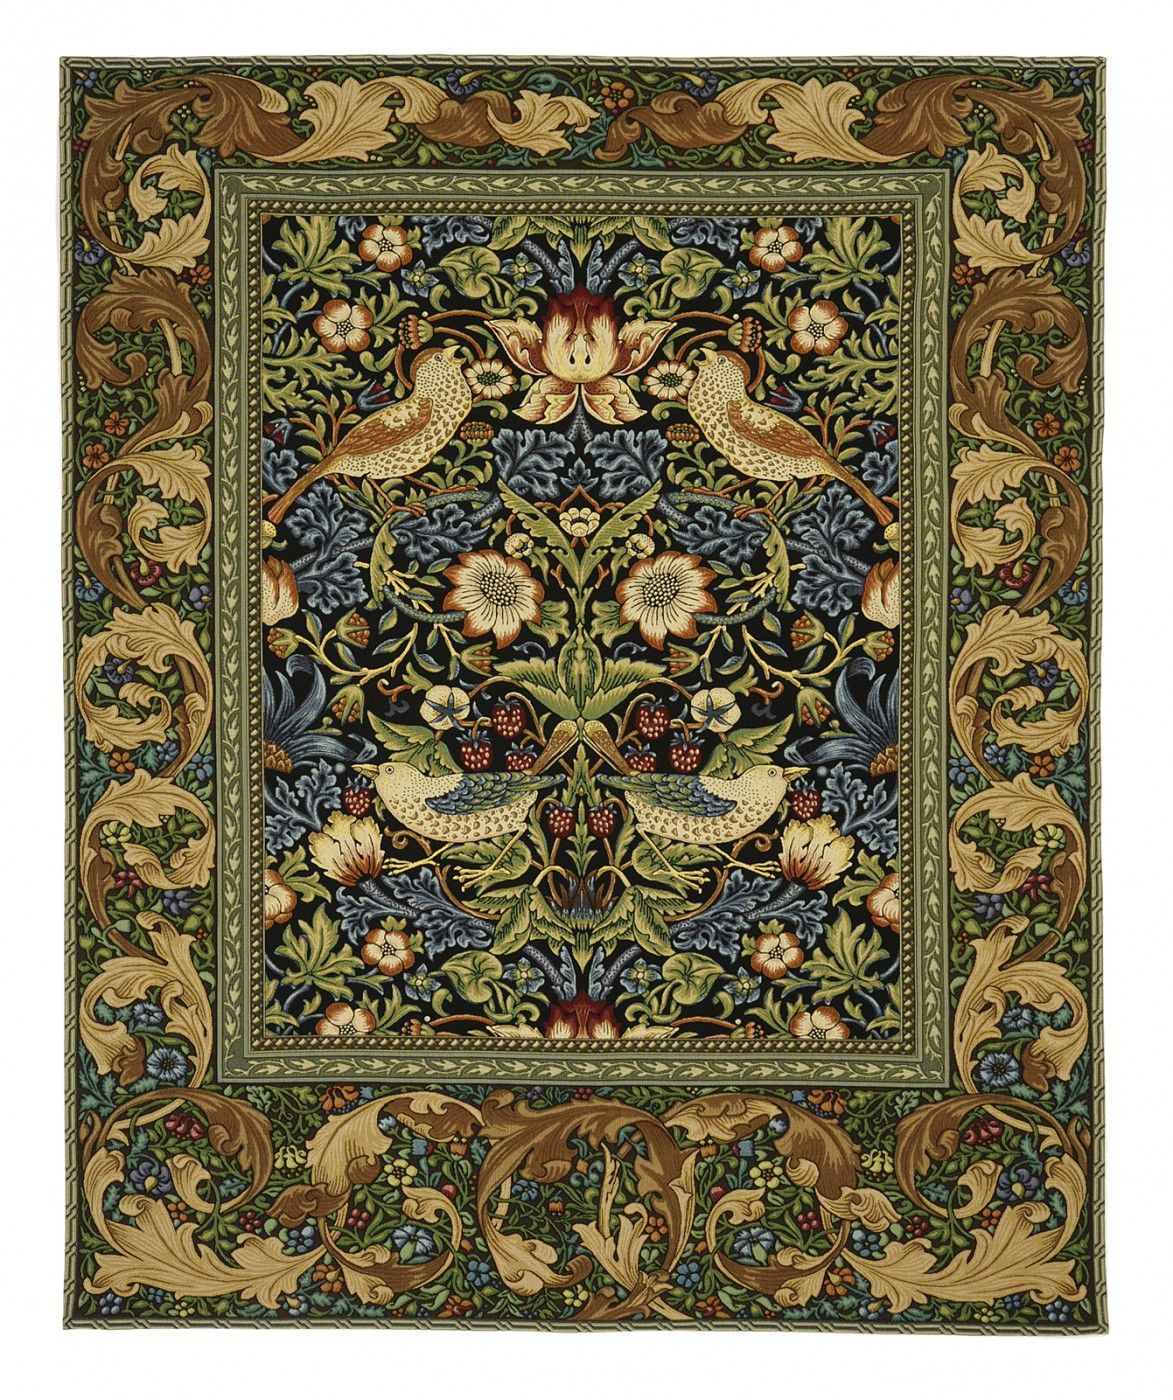 William Morris Rugs Reproductions